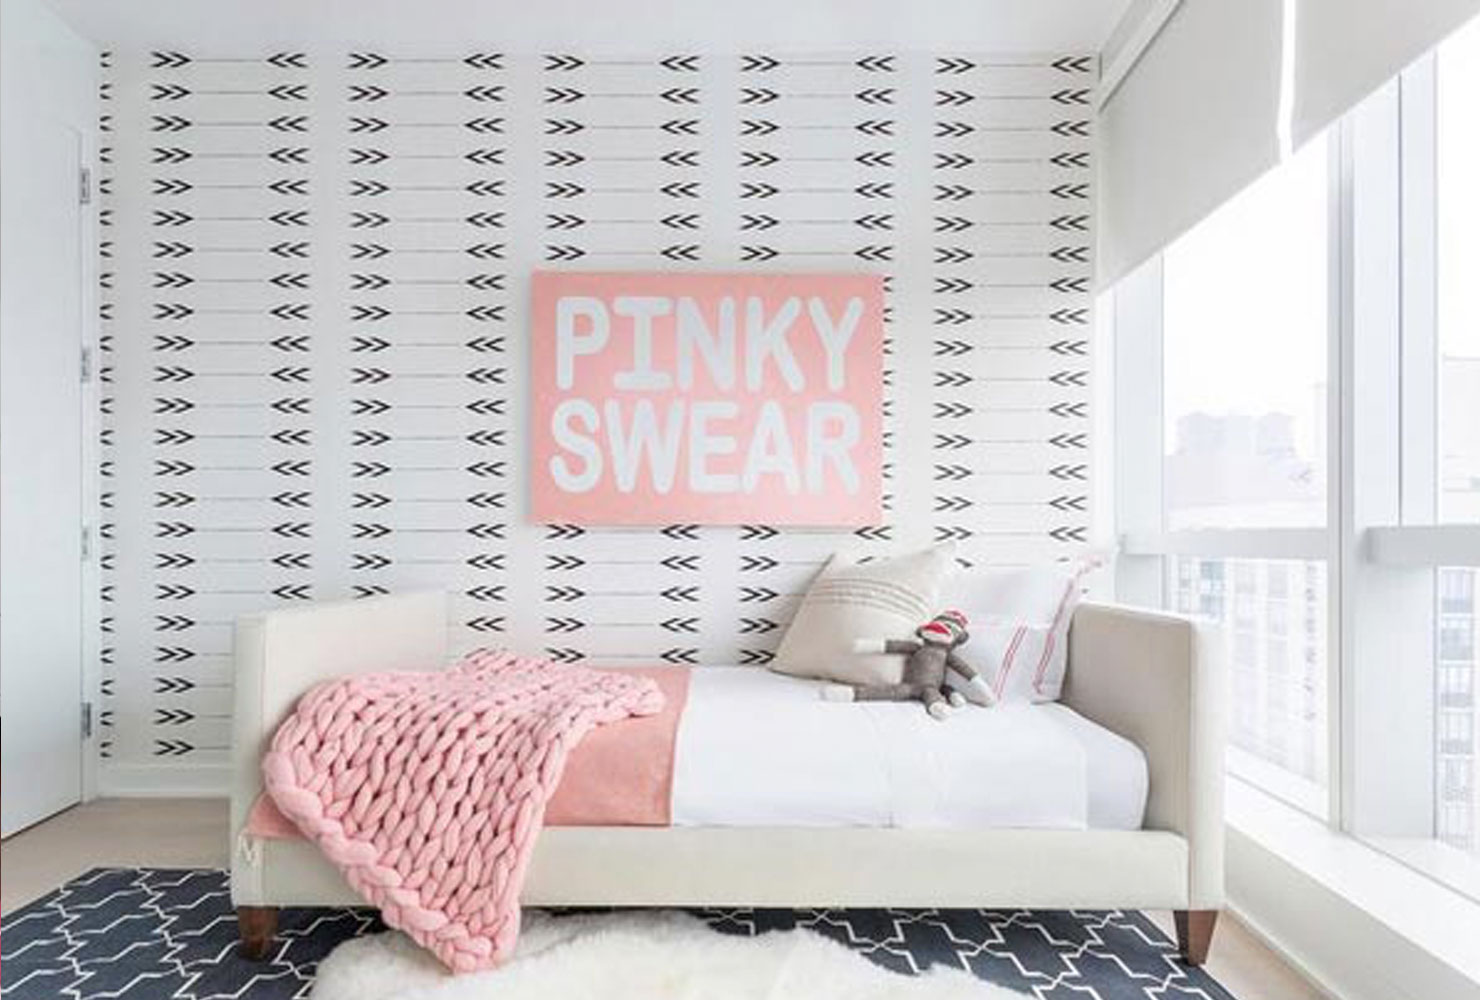 Pink and white girls bedroom decor.